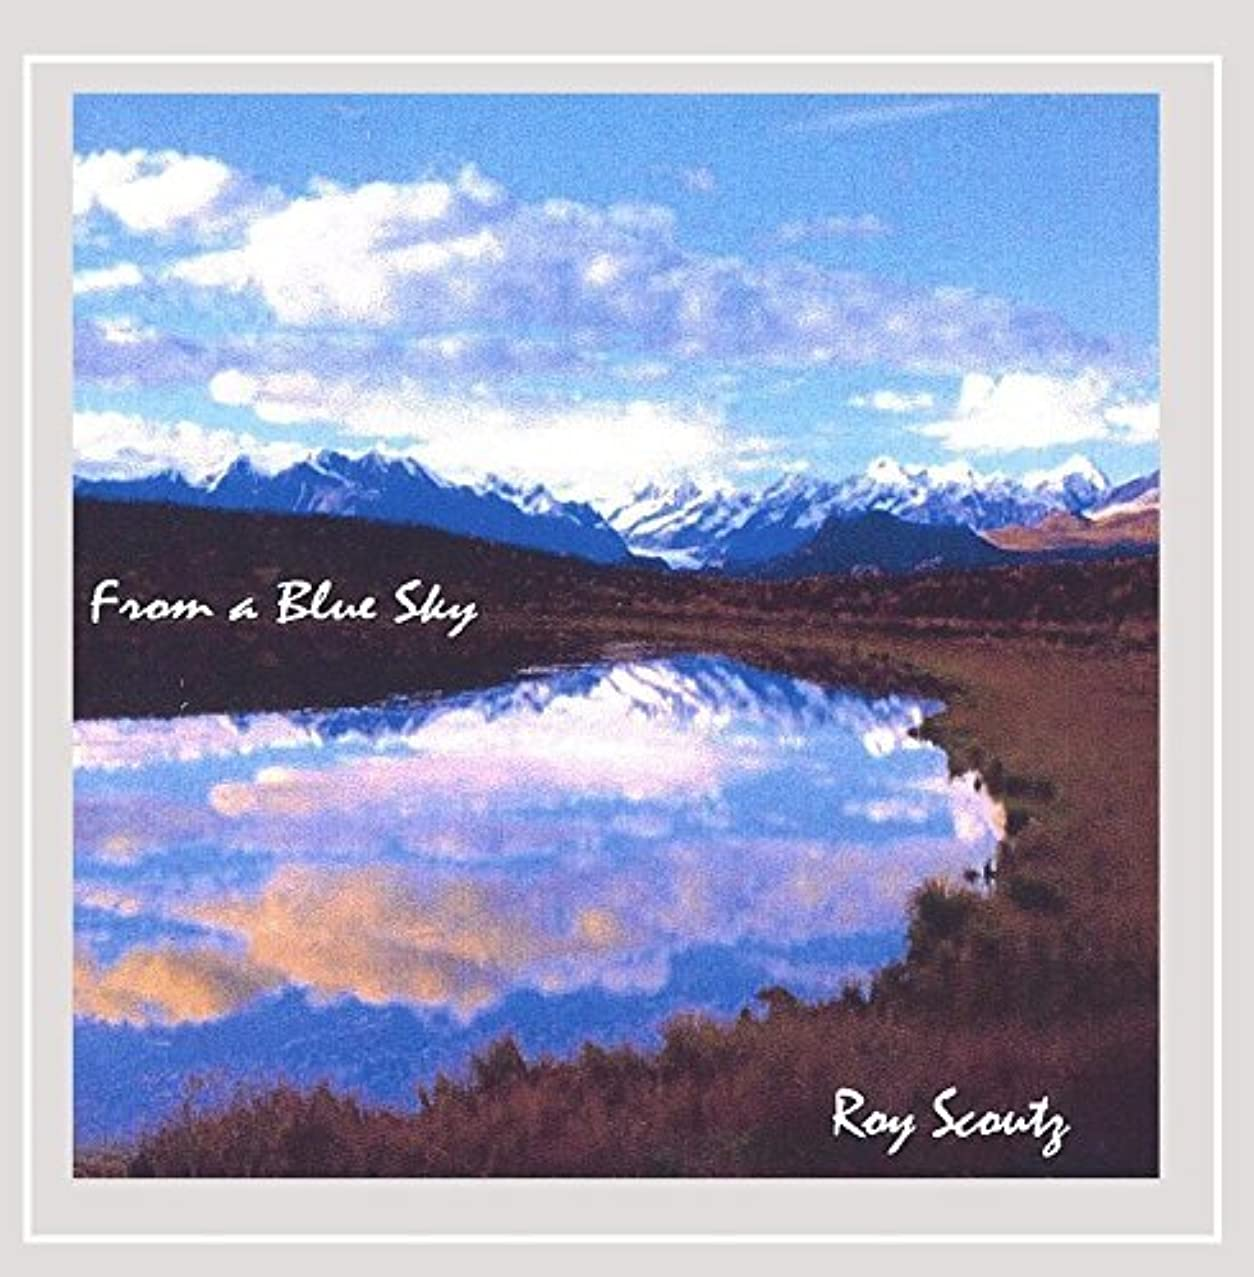 From a Blue Sky by Roy Scoutz